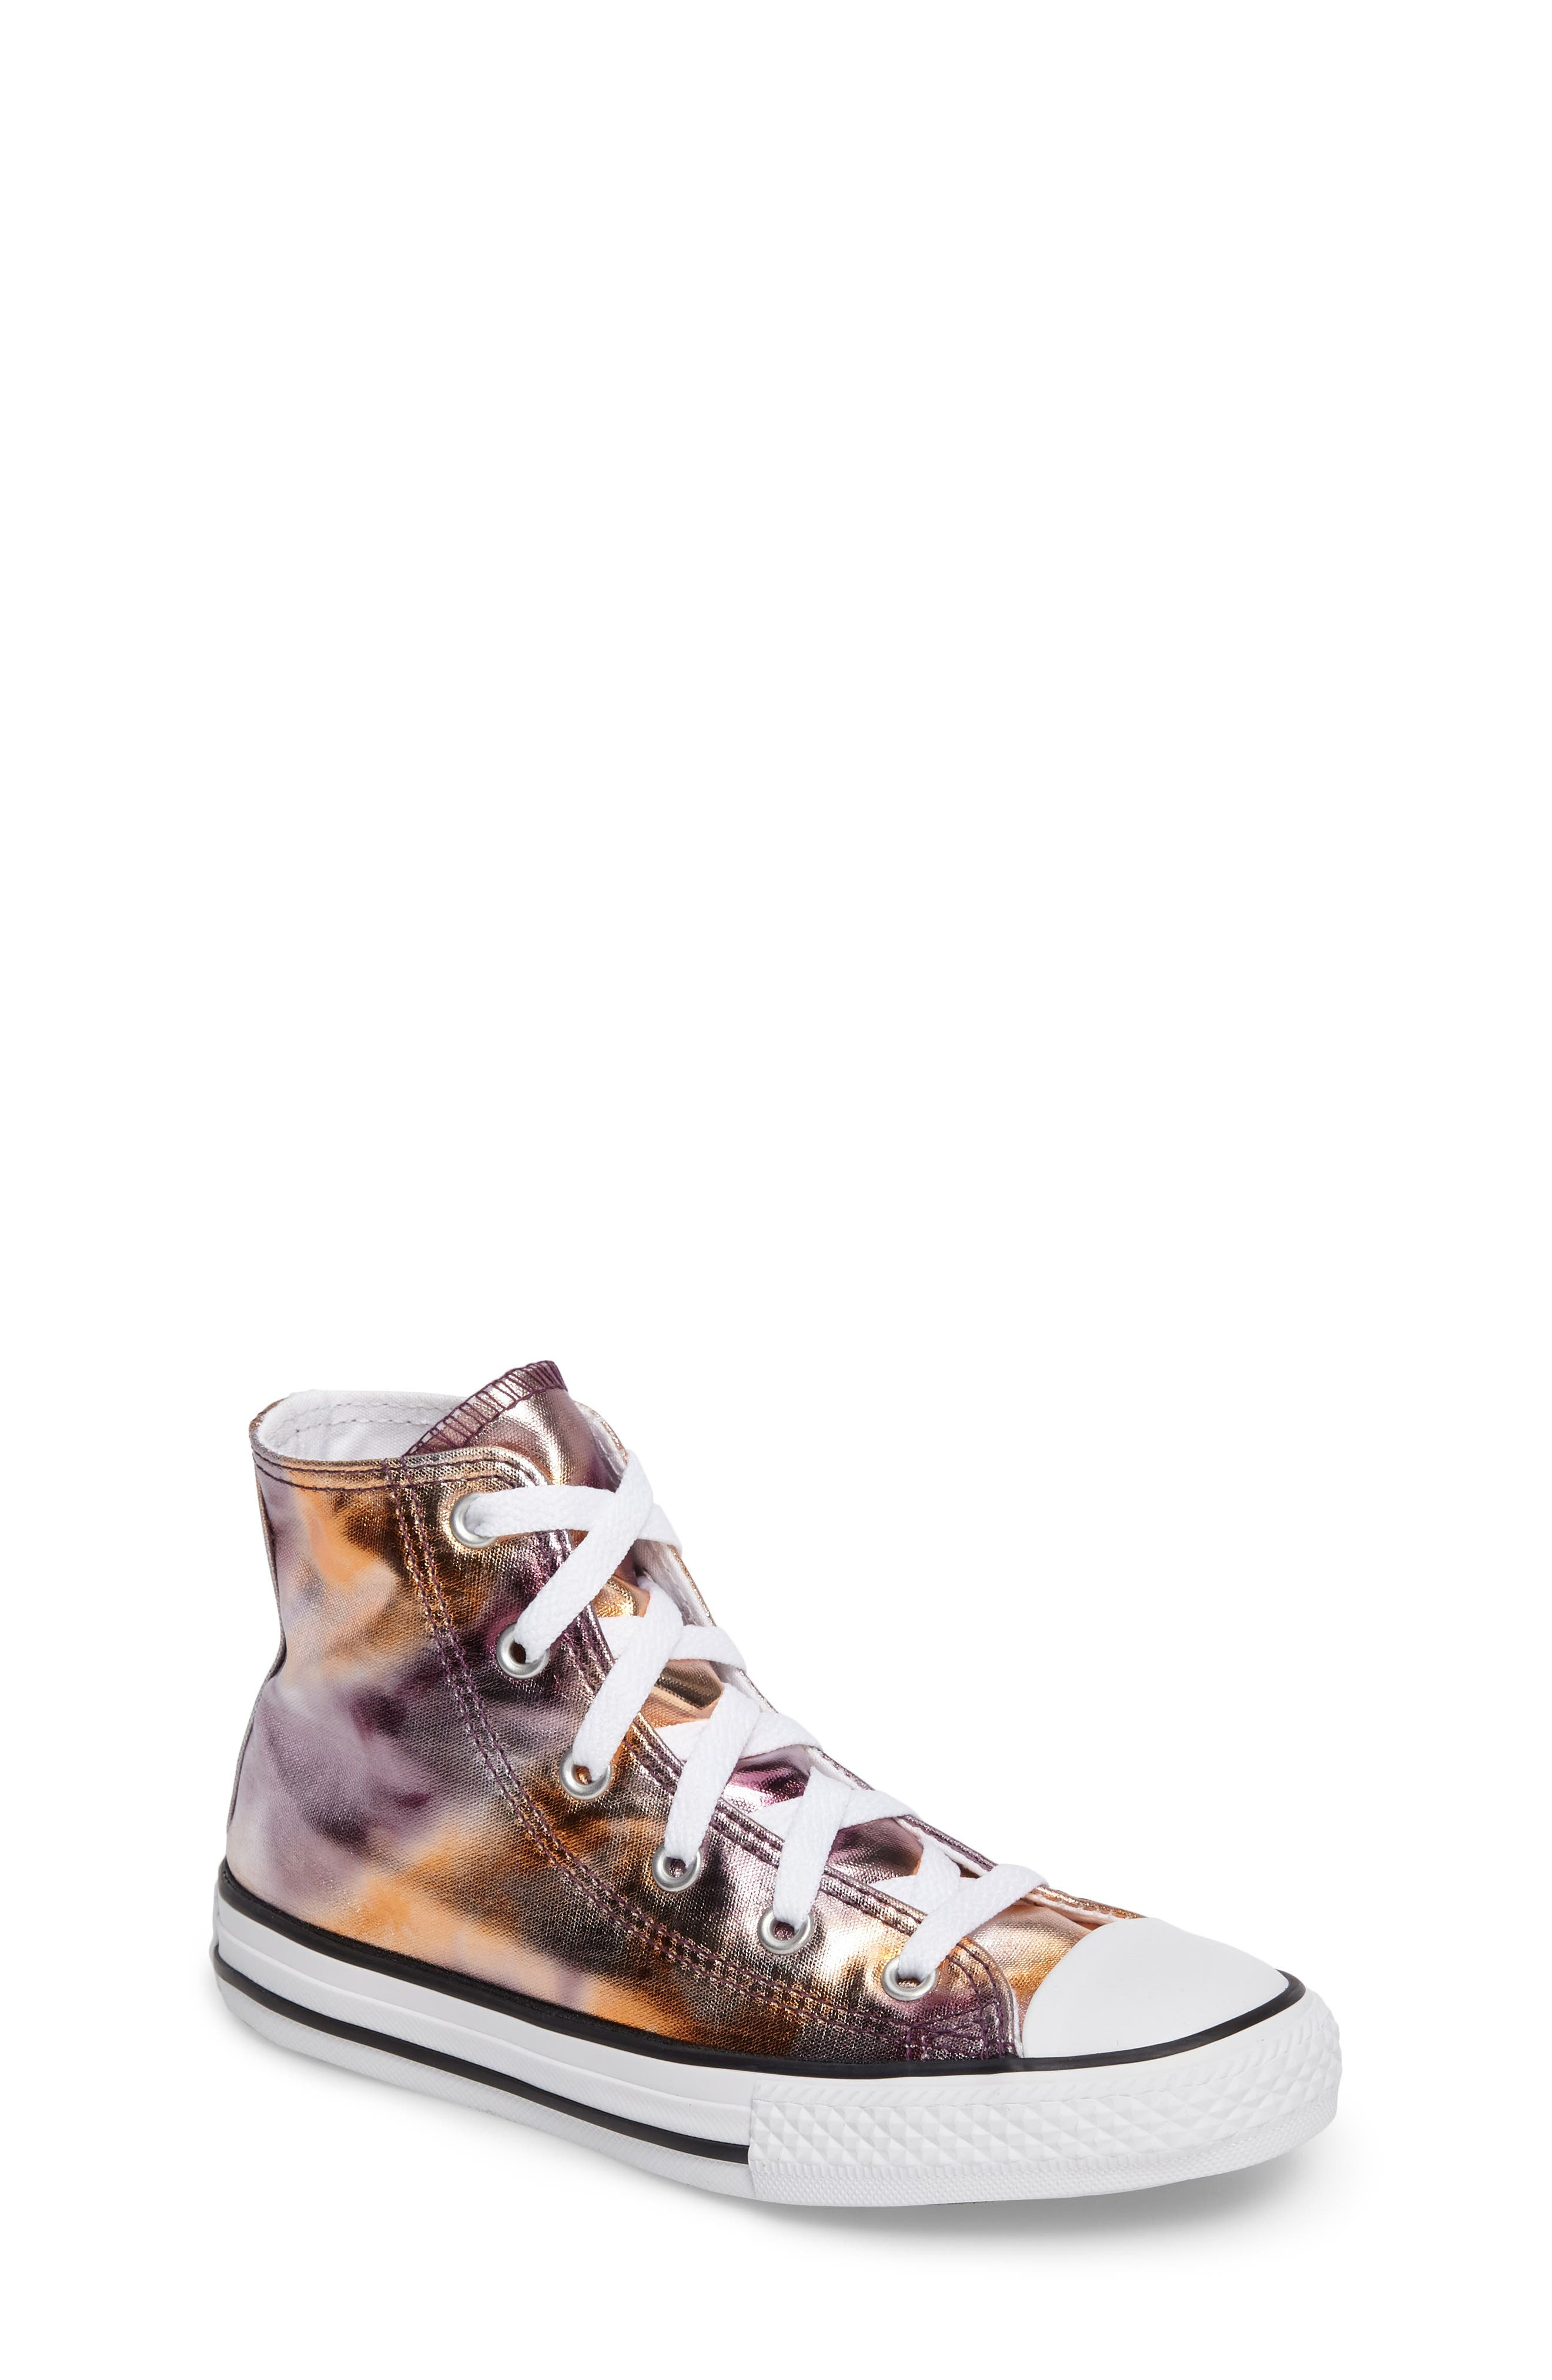 Chuck Taylor<sup>®</sup> All Star<sup>®</sup> Metallic High Top Sneaker,                             Main thumbnail 1, color,                             Dusk Pink Coated Canvas